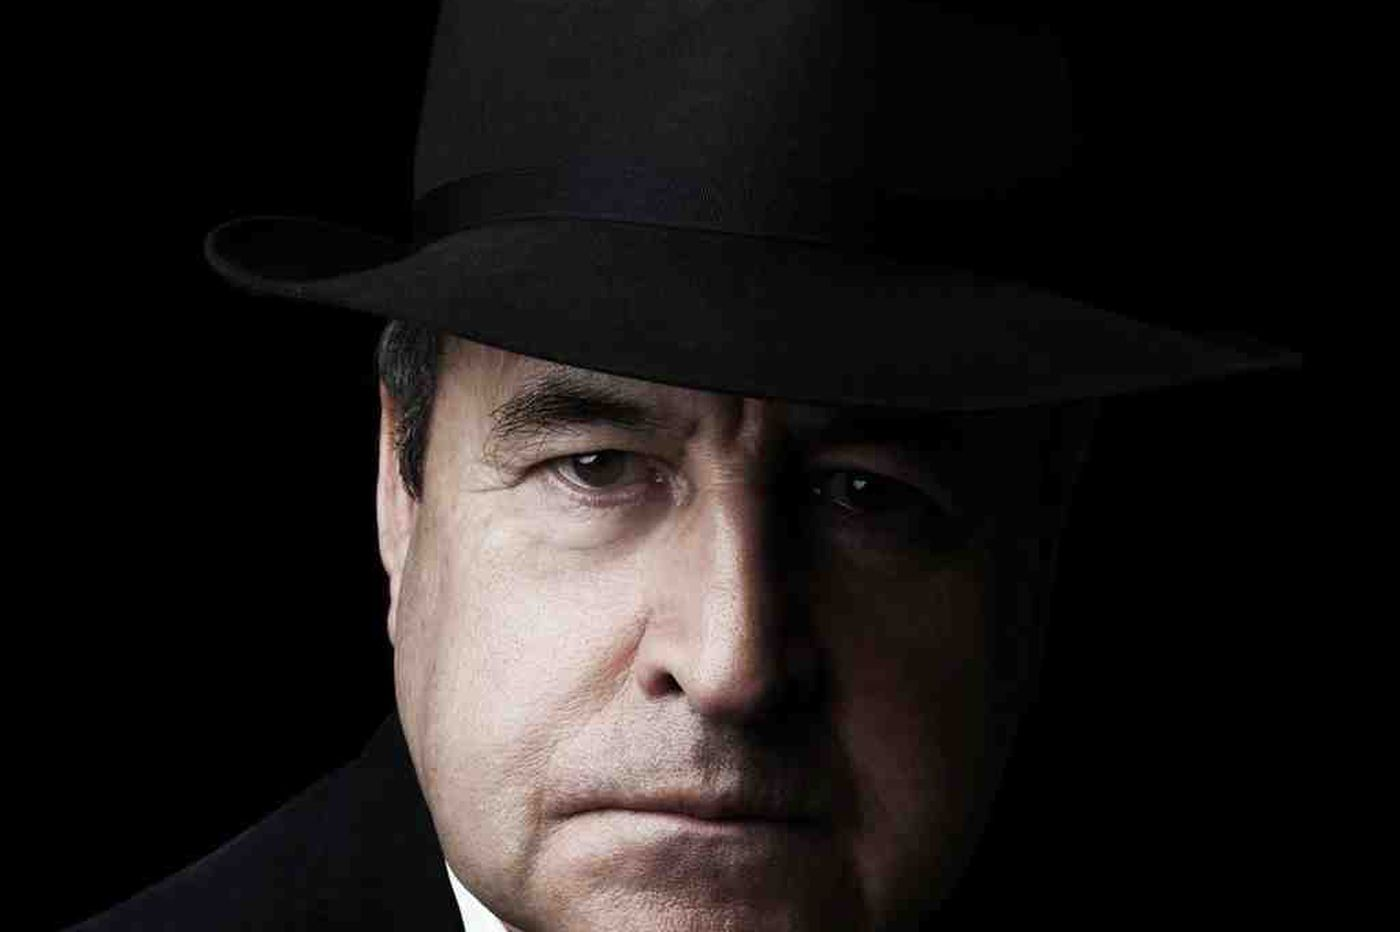 Ireland, with sleuth Quirke, stars in tale of tycoon's death